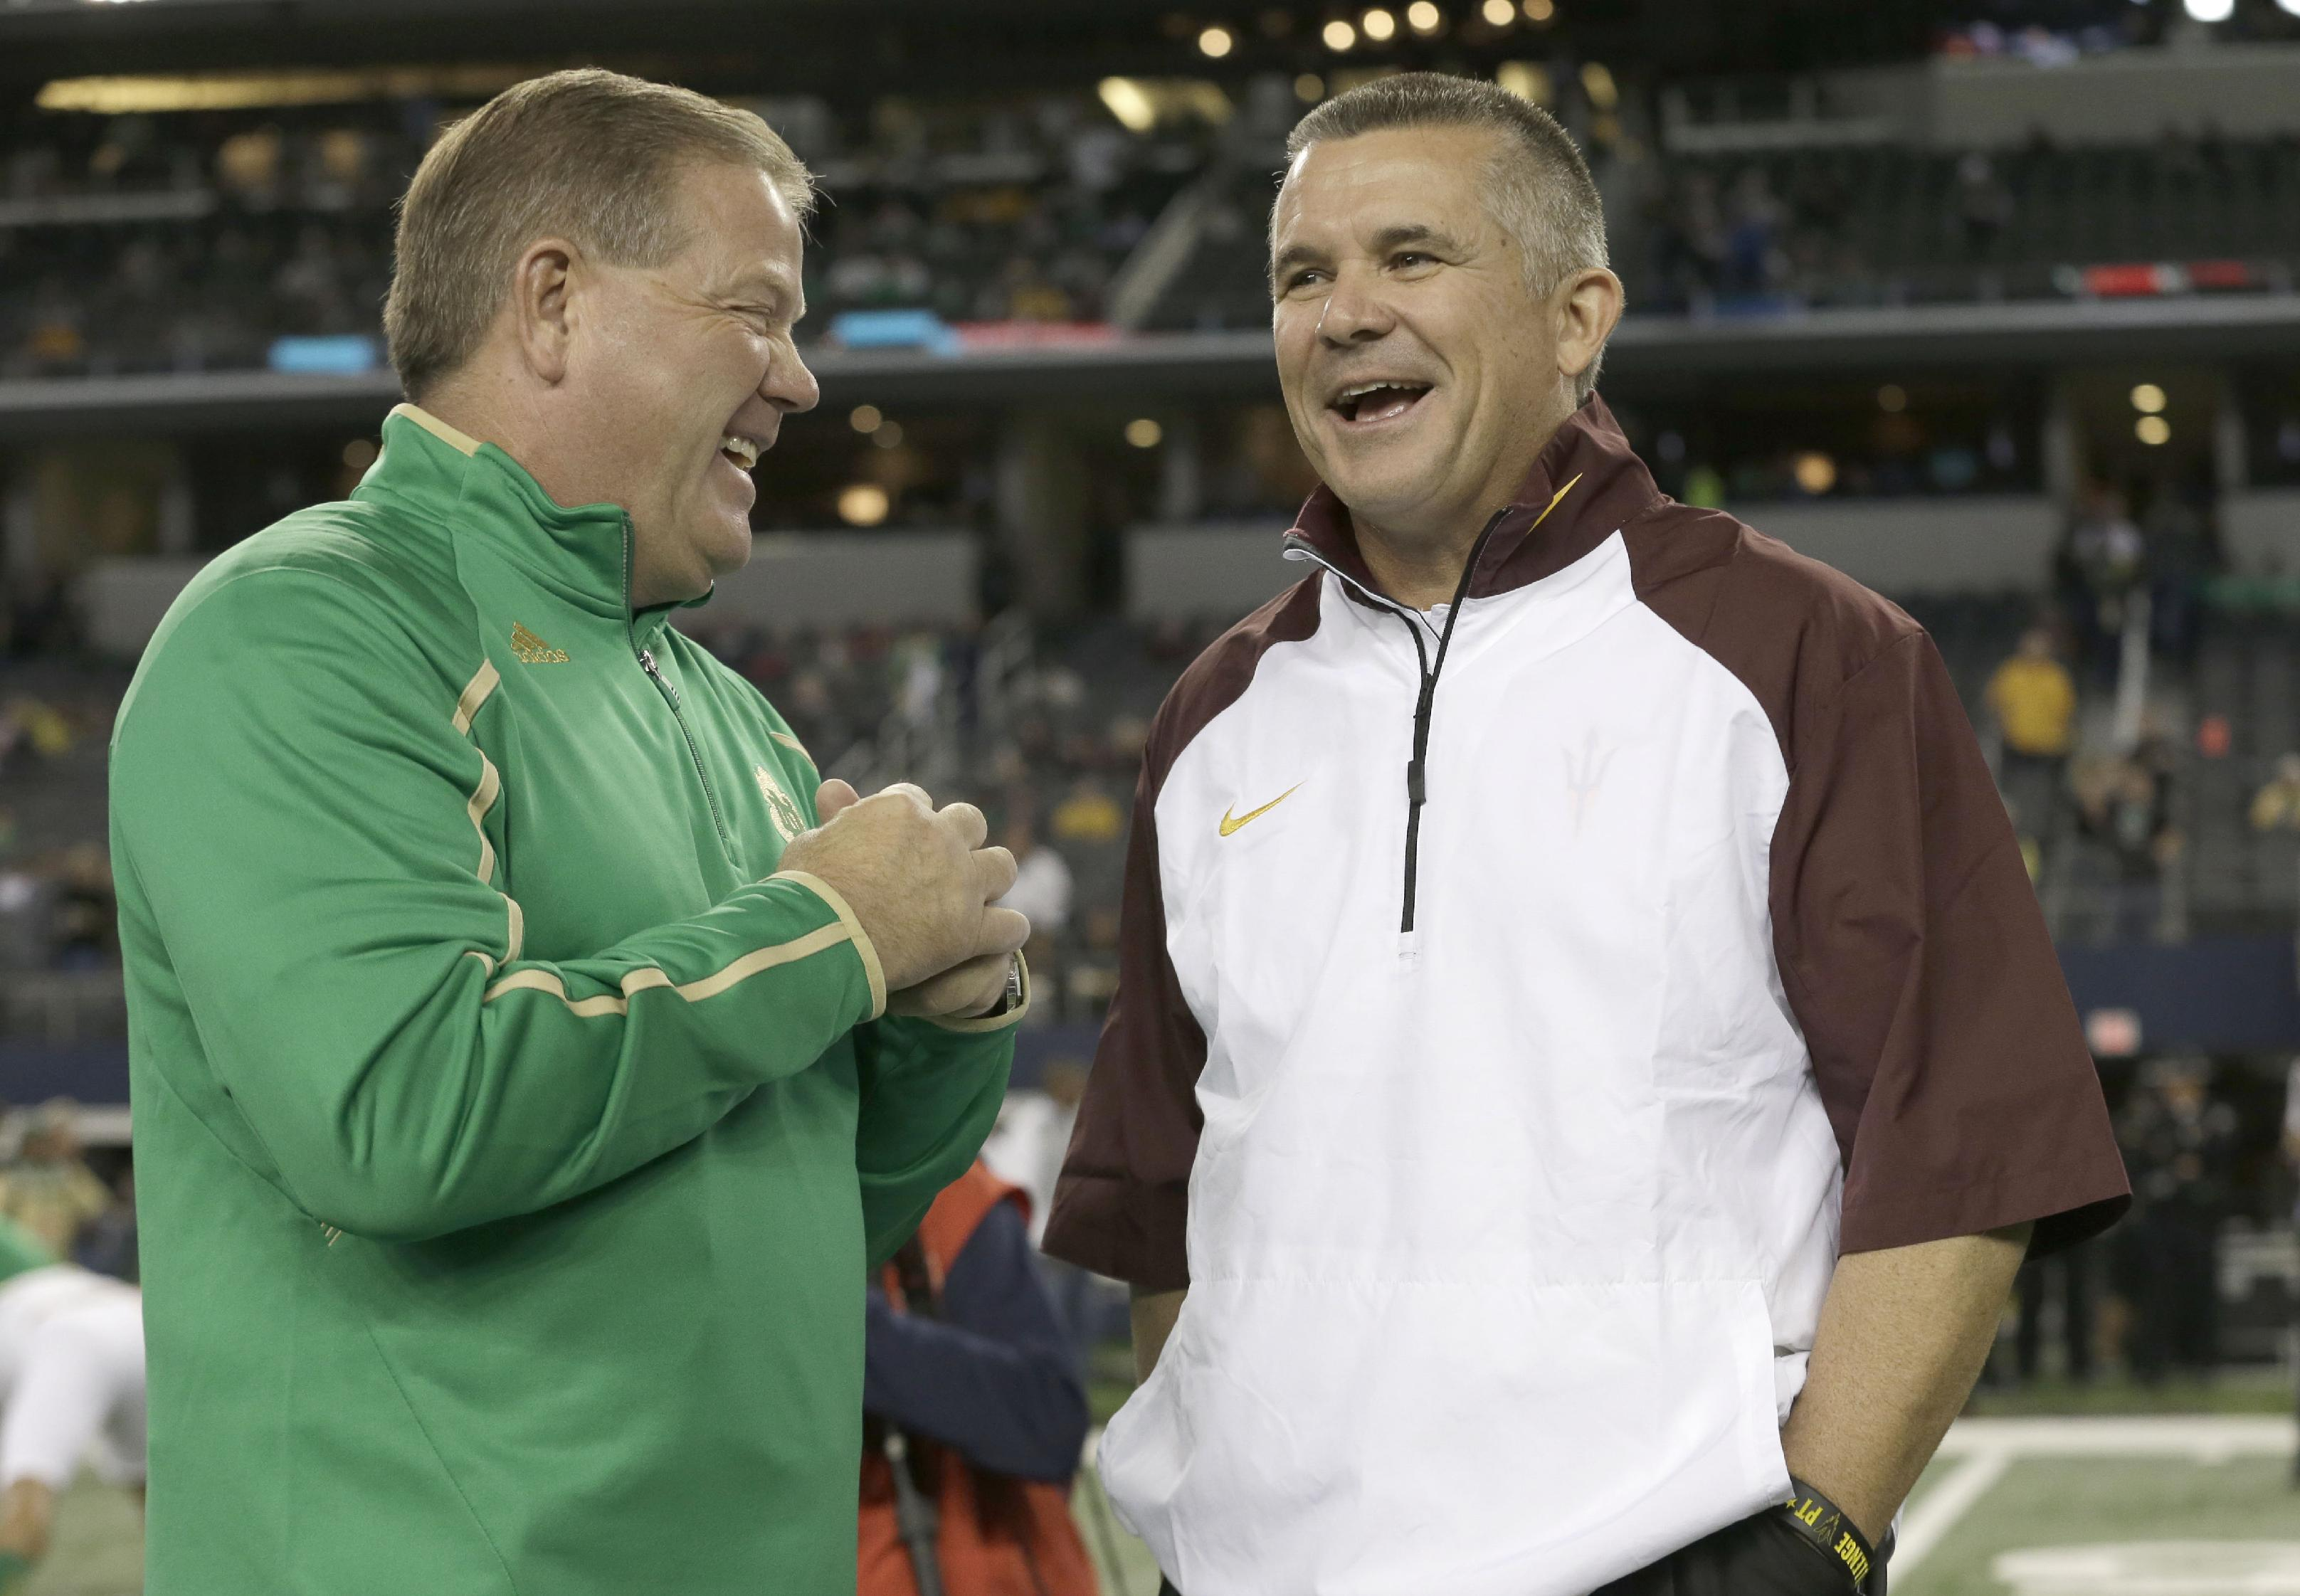 Notre Dame coach Brian Kelly, left, and Arizona State coach Todd Graham chat on the field before an NCAA college football game Saturday, Oct. 5, 2013, in Arlington, Texas